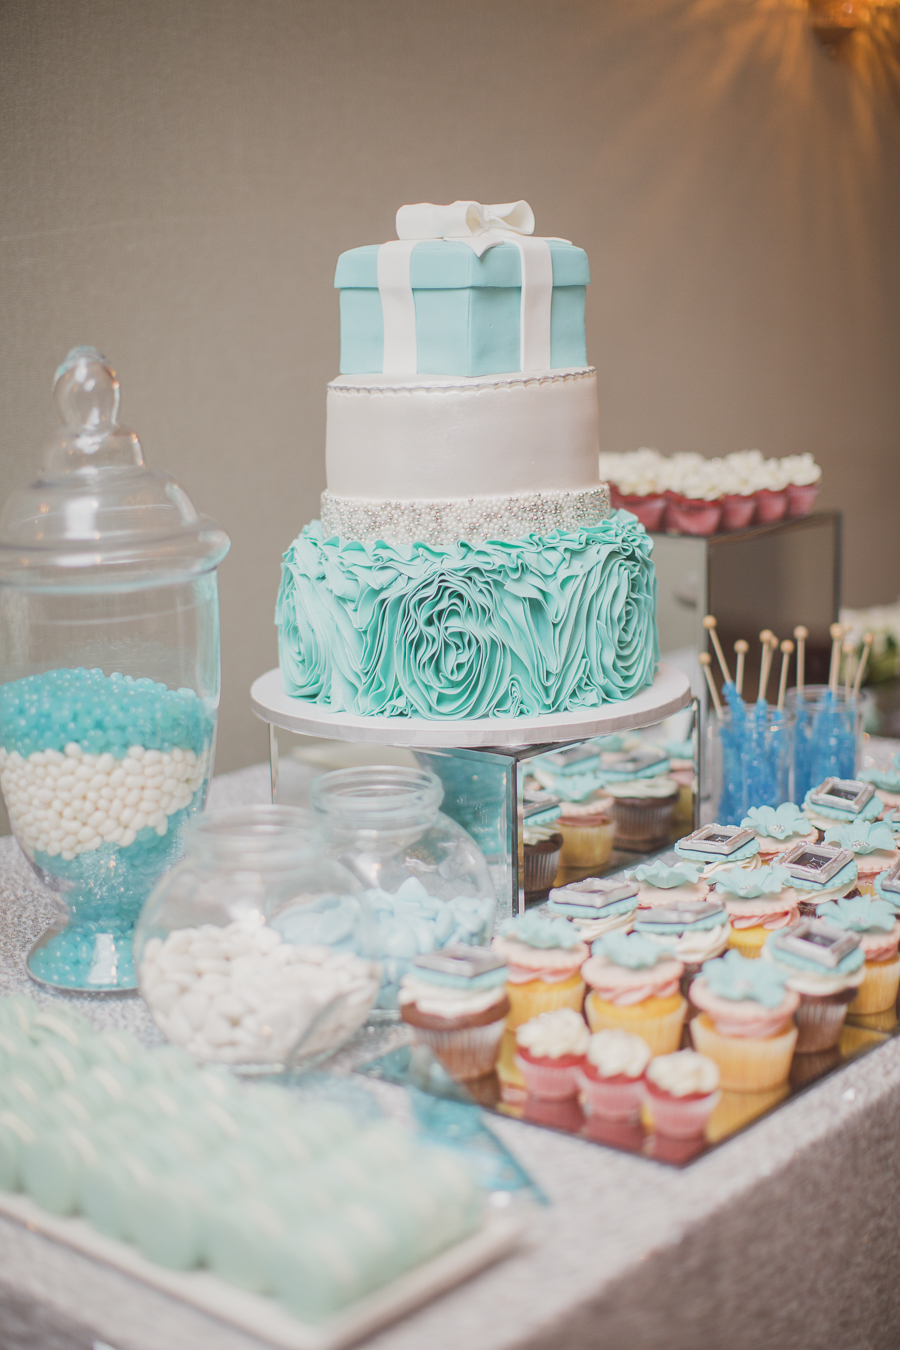 Tiffany-inspired wedding cake with ruffles and pearls. See more at Rebecca Chan Weddings and Events http://www.rebeccachan.ca